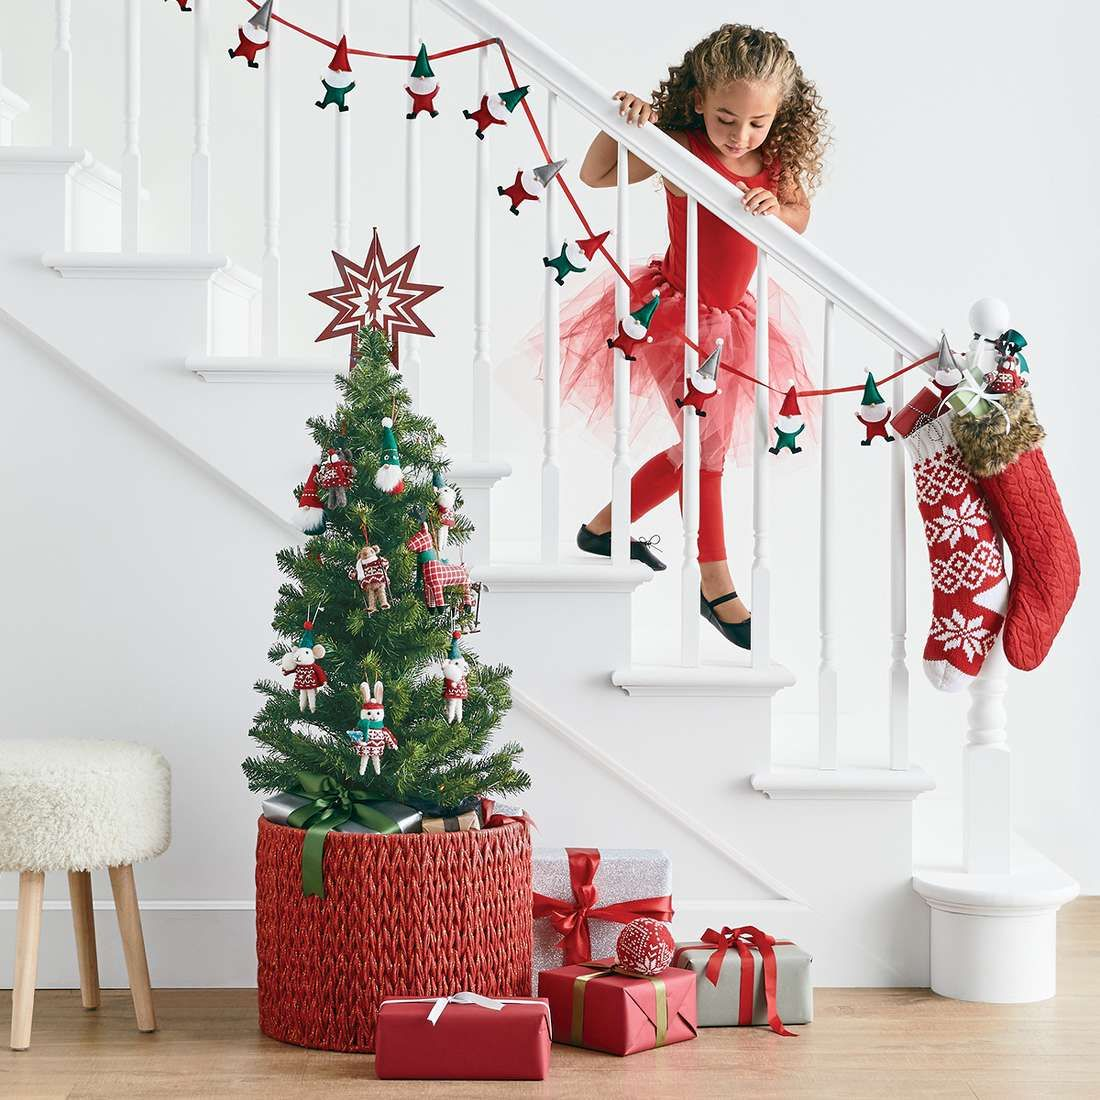 Low Price Christmas Decorations: Shop Target For Indoor Christmas Decorations You Will Love